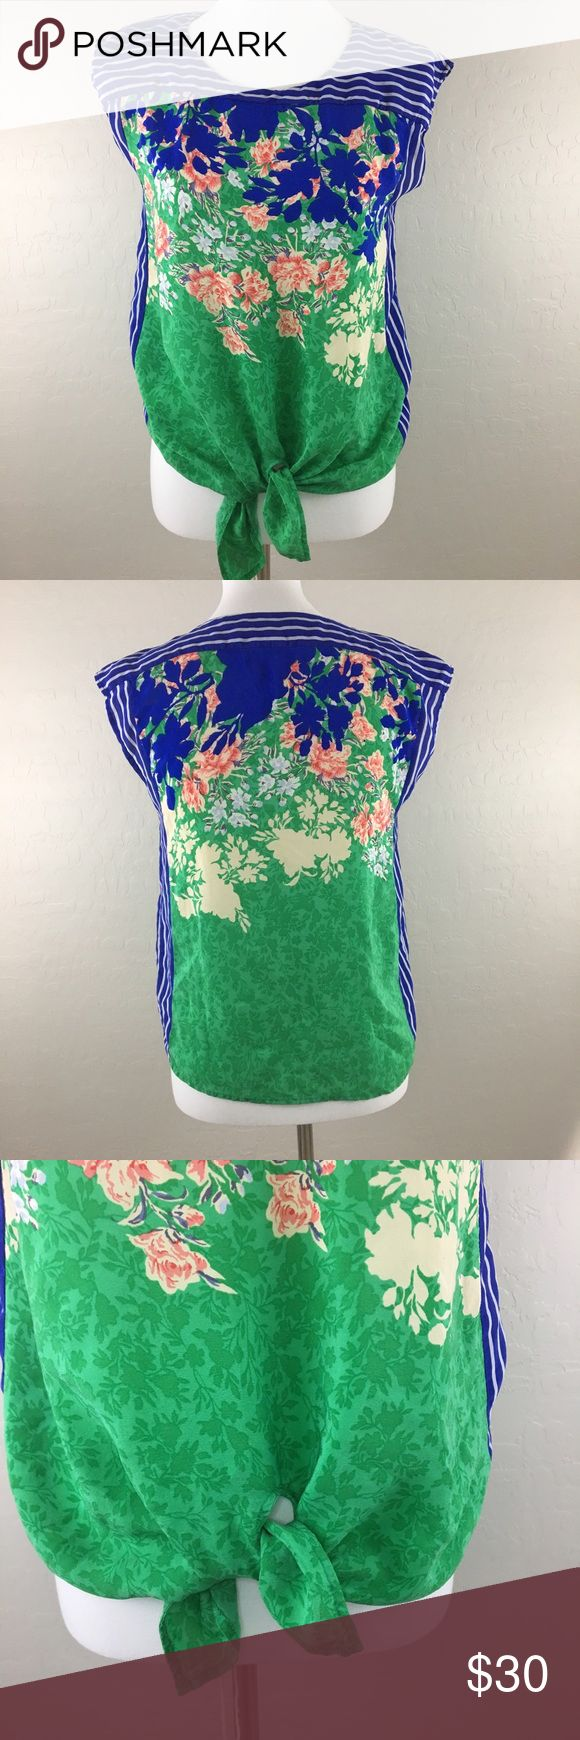 Anthropologie Silk Blouse by Moulinette Soeurs Pretty silk floral top by Moulinette Souers. Features a tie front waist. Gentle used condition. No noted flaws. Anthropologie Tops